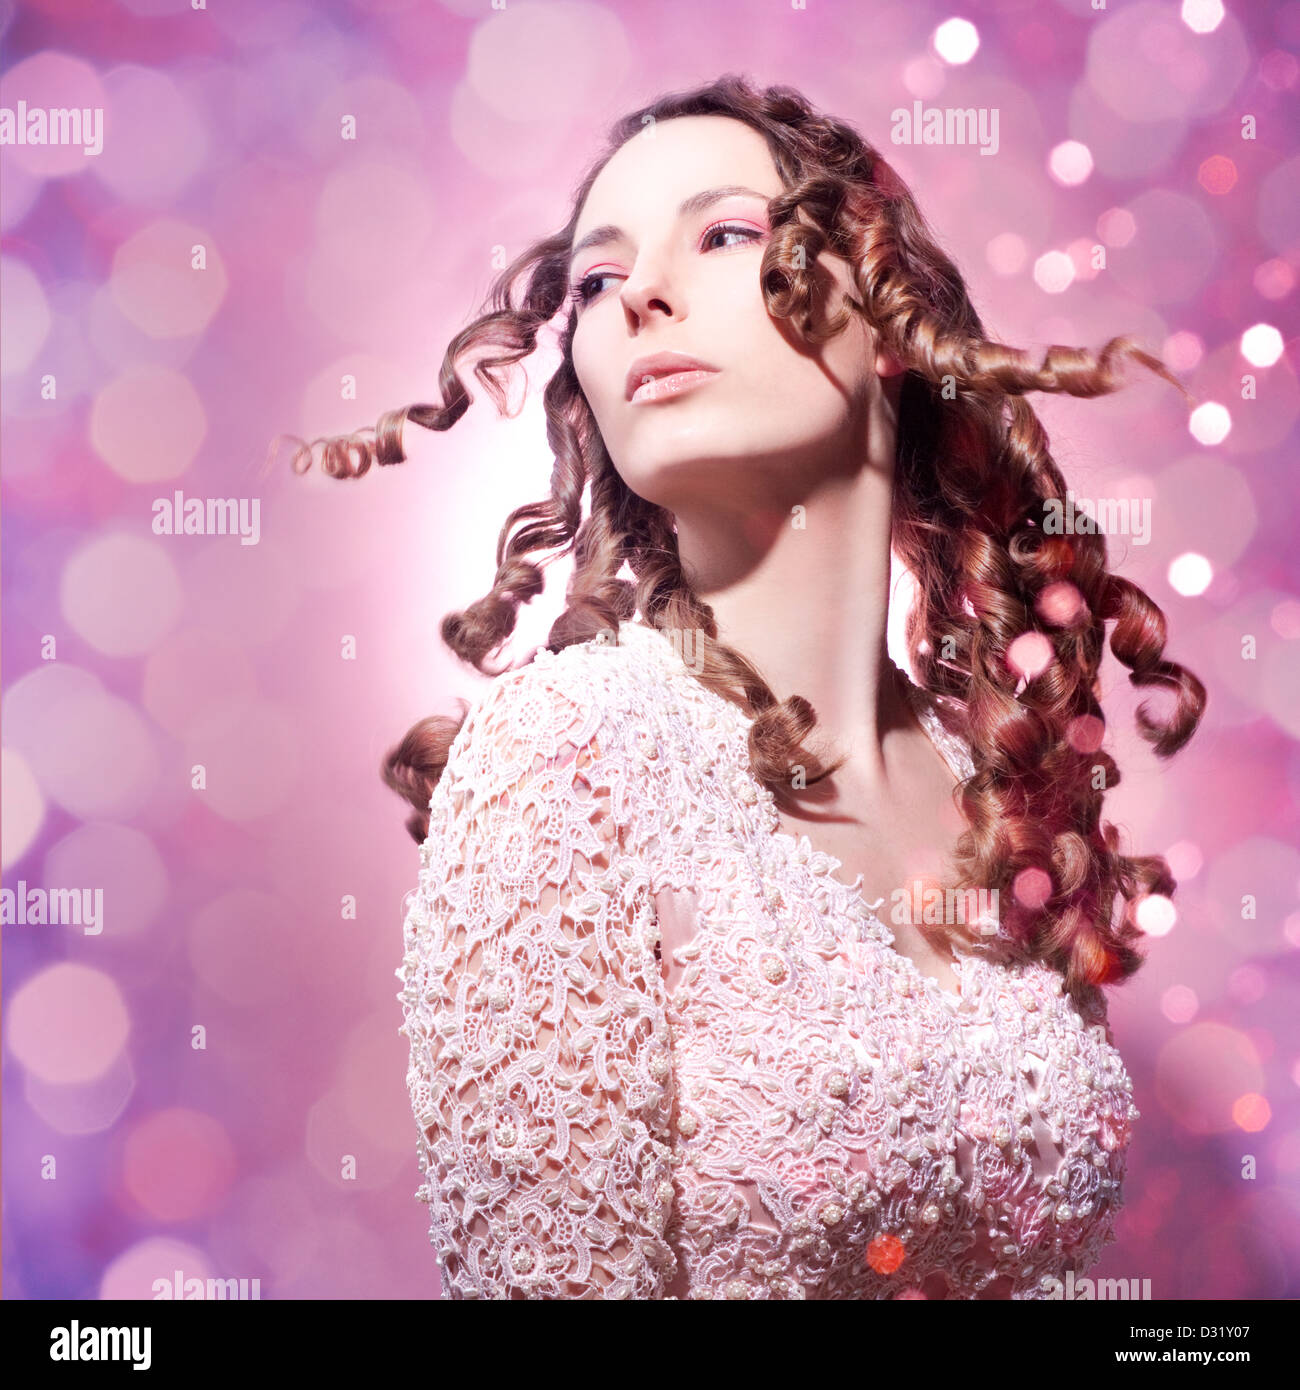 beautiful pink princess - Stock Image